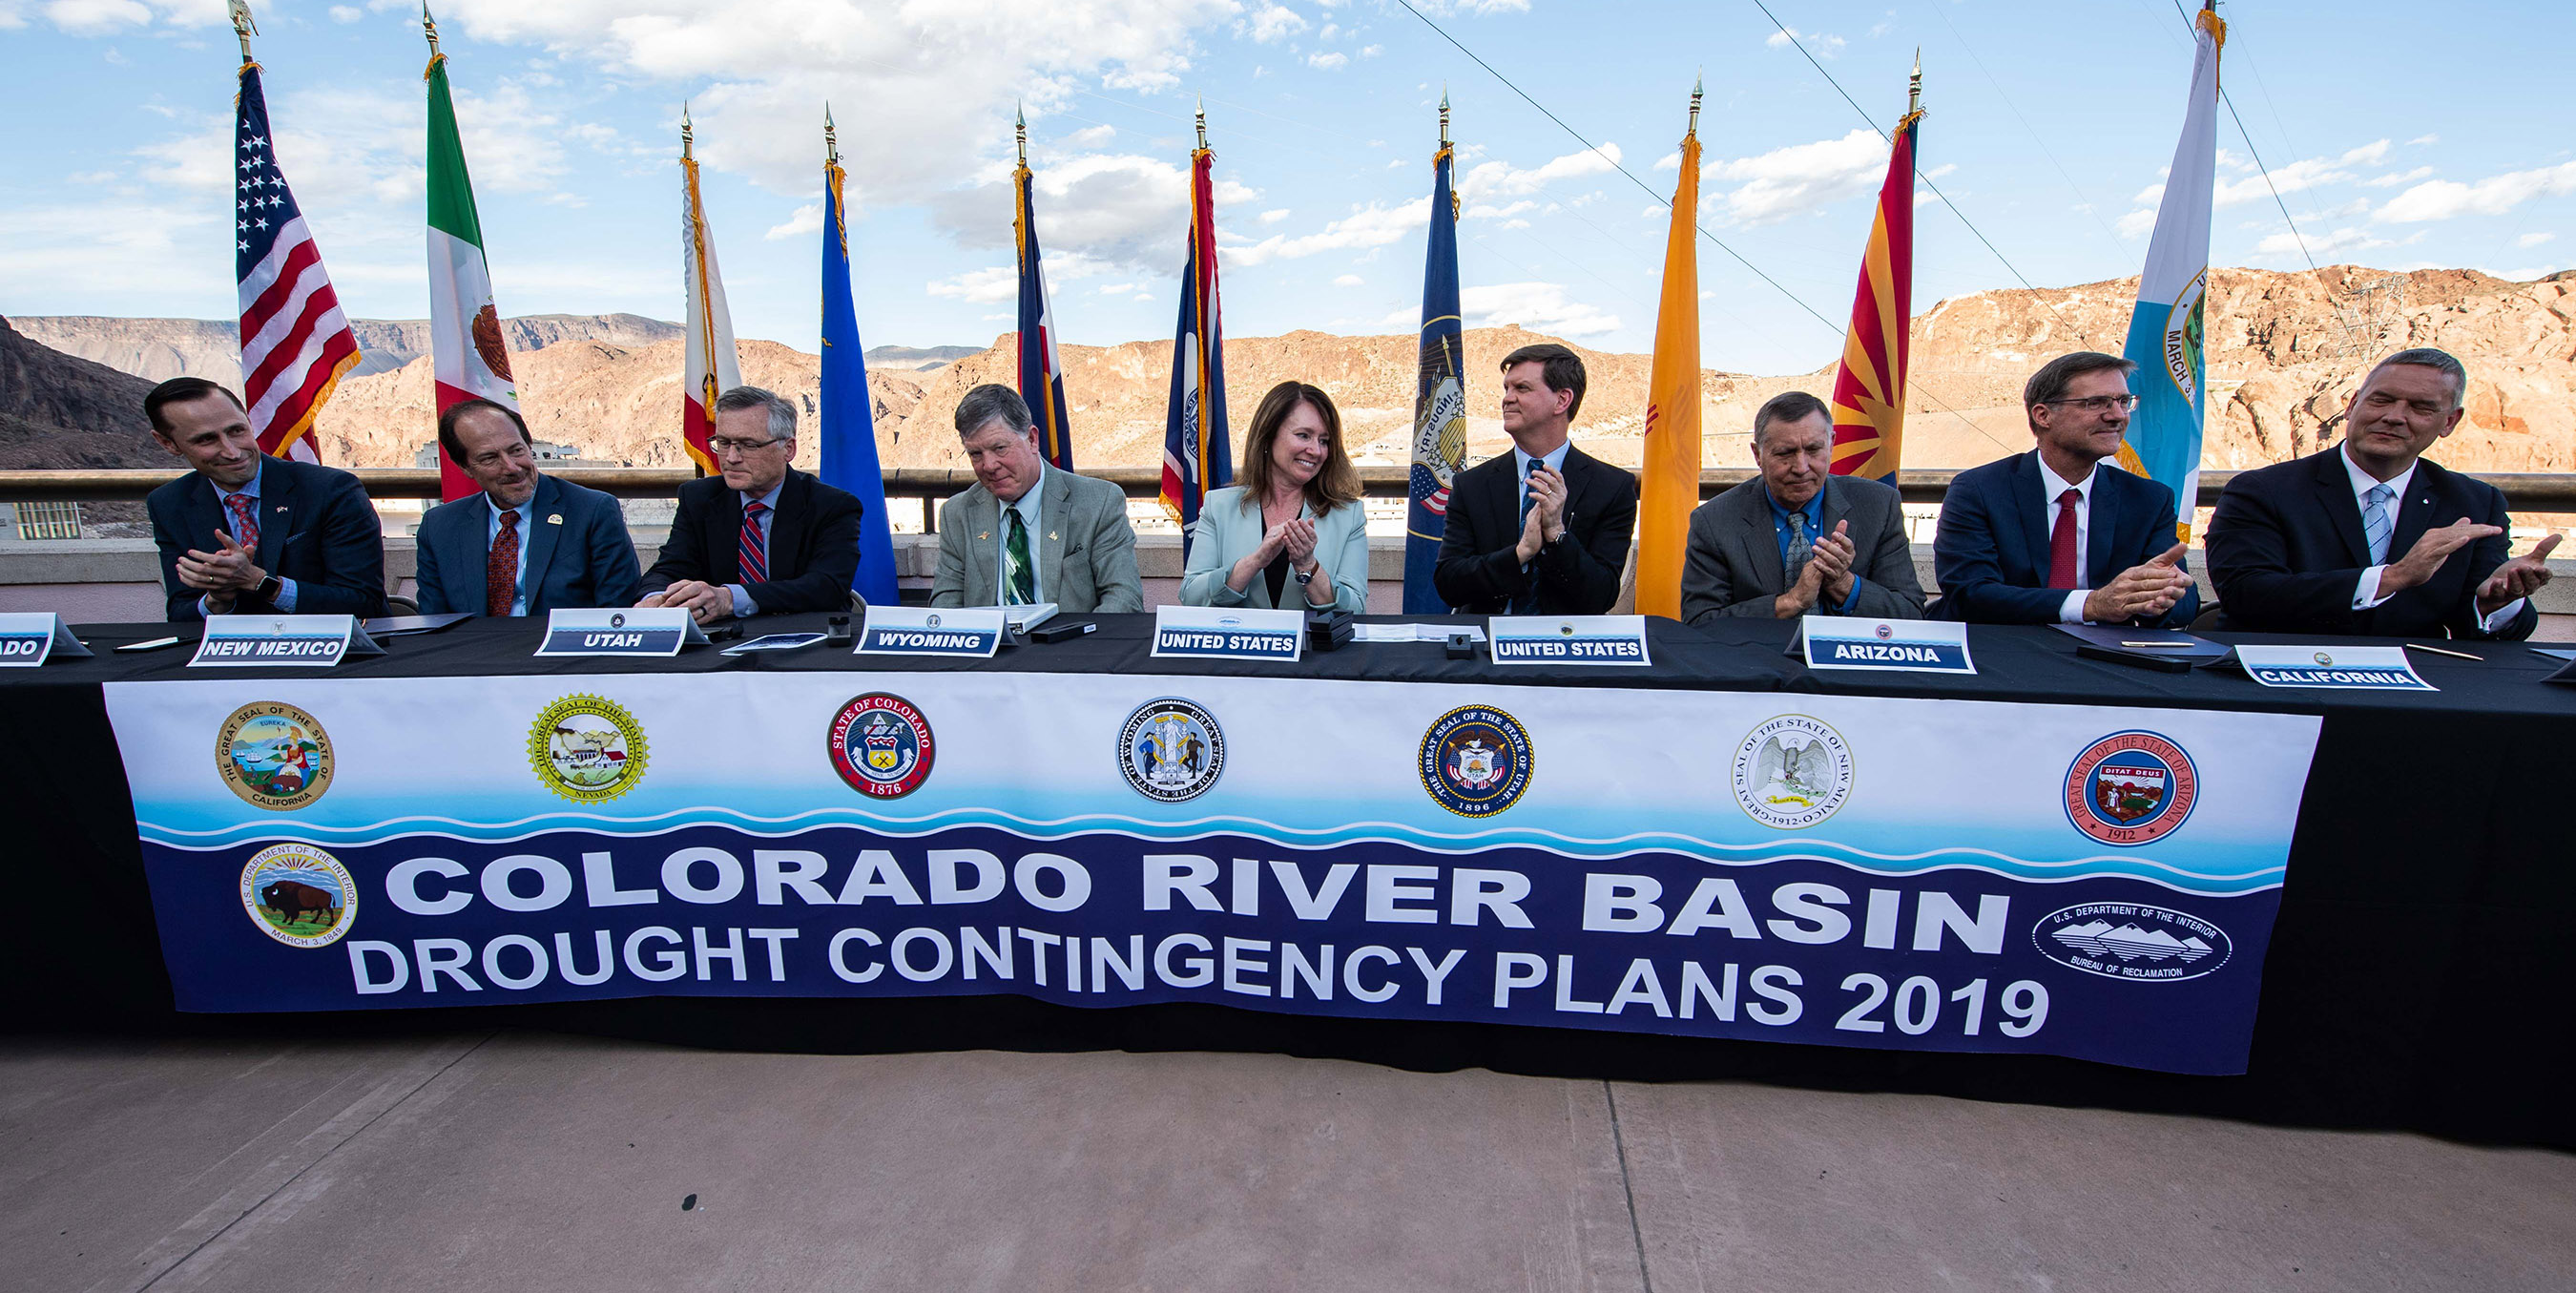 The Department of the Interior, Bureau of Reclamation and representatives from all seven Colorado River Basin states gathered and signed completed drought contingency plans for the Upper and Lower Colorado River basins.